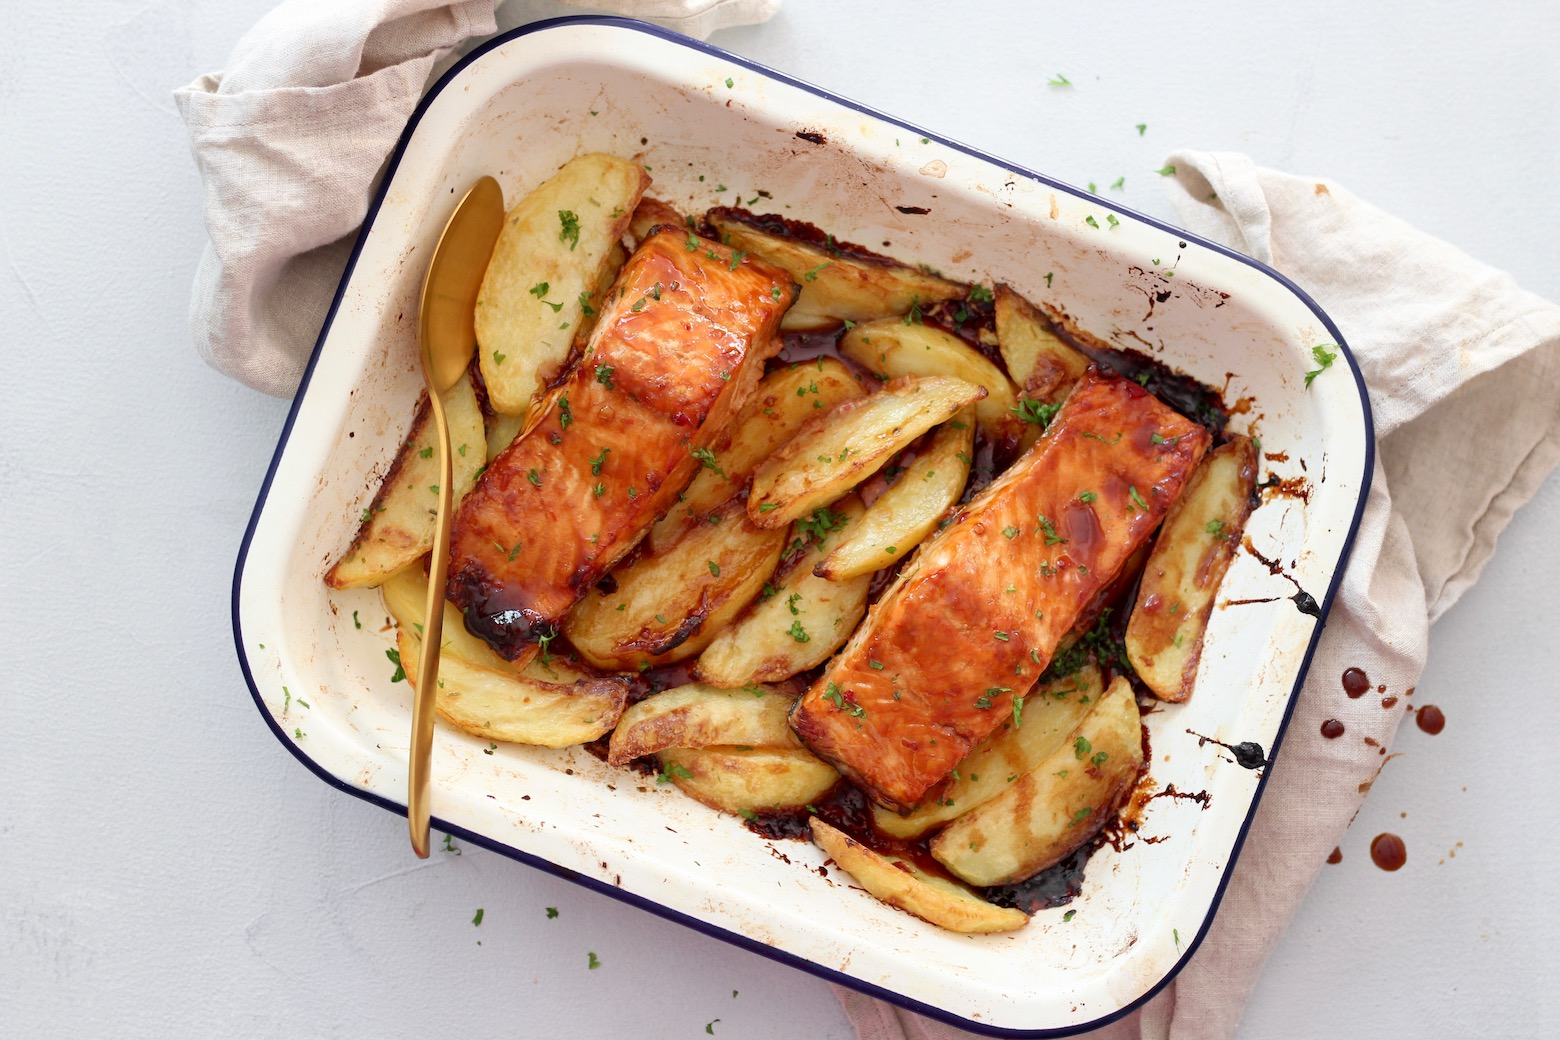 Top down image of Asian glazed salmon on a bed of crispy wedges in a baking tray with a serving spoon and tea towel